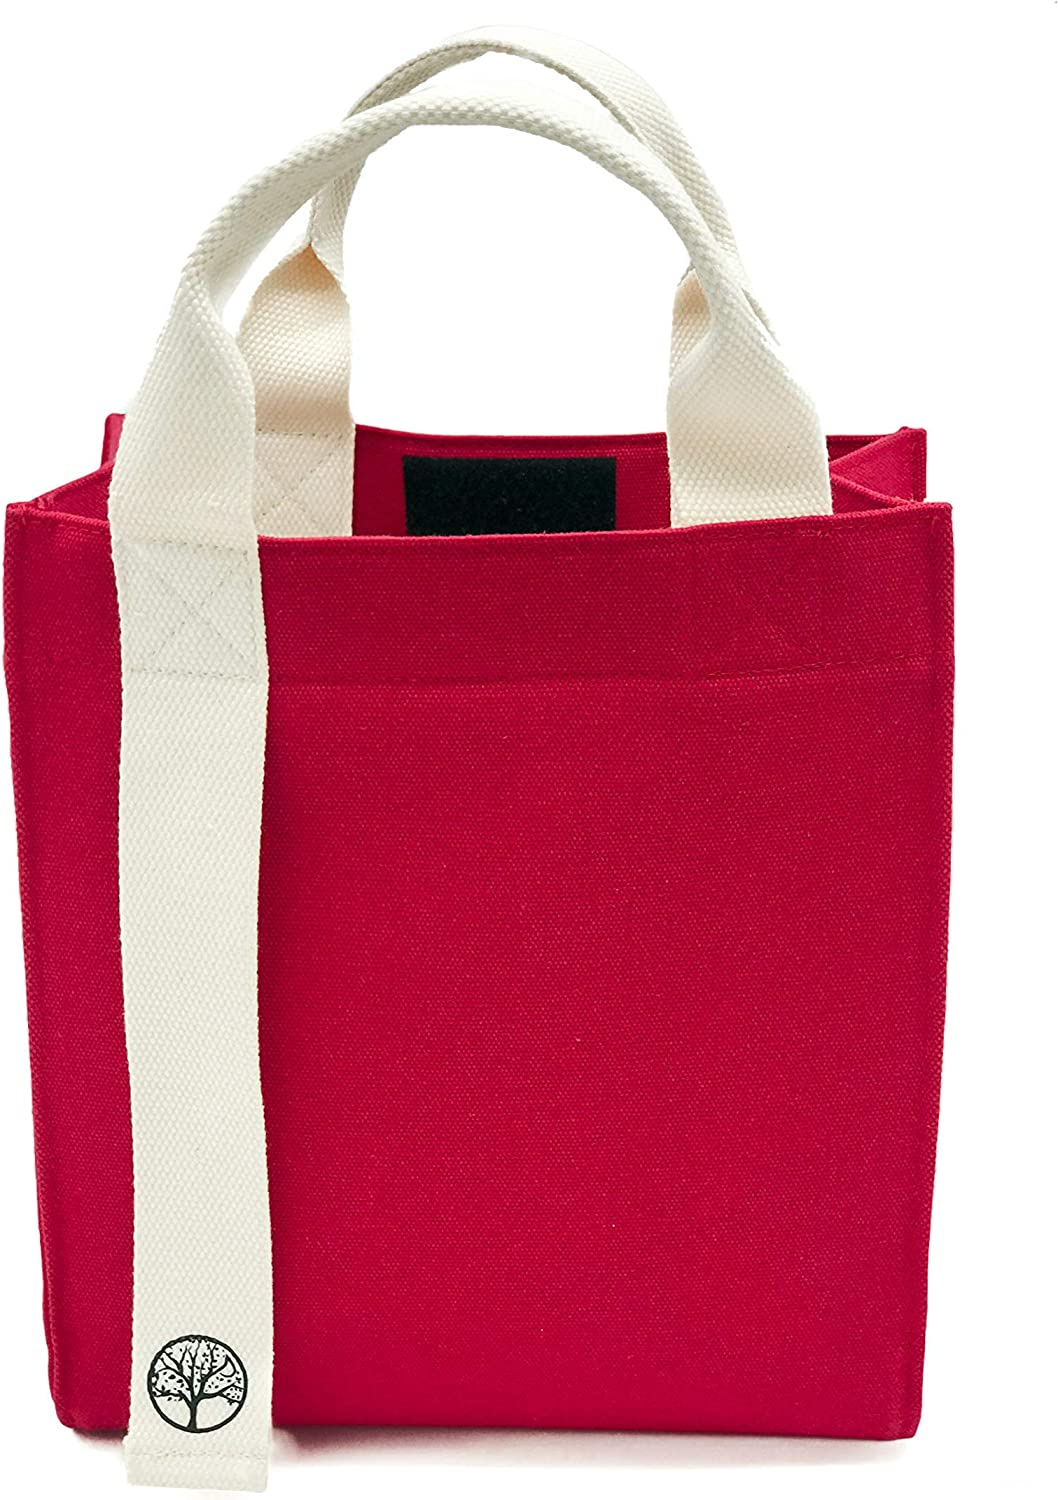 VIRGIN PULP Canvas Lunch Bag| Extra Thick Insulation keeps food cold, fresh & hot Construction| Large size to fit sandwich, salad, containers| Perfect for Men, Women, Teens & Kids| Red